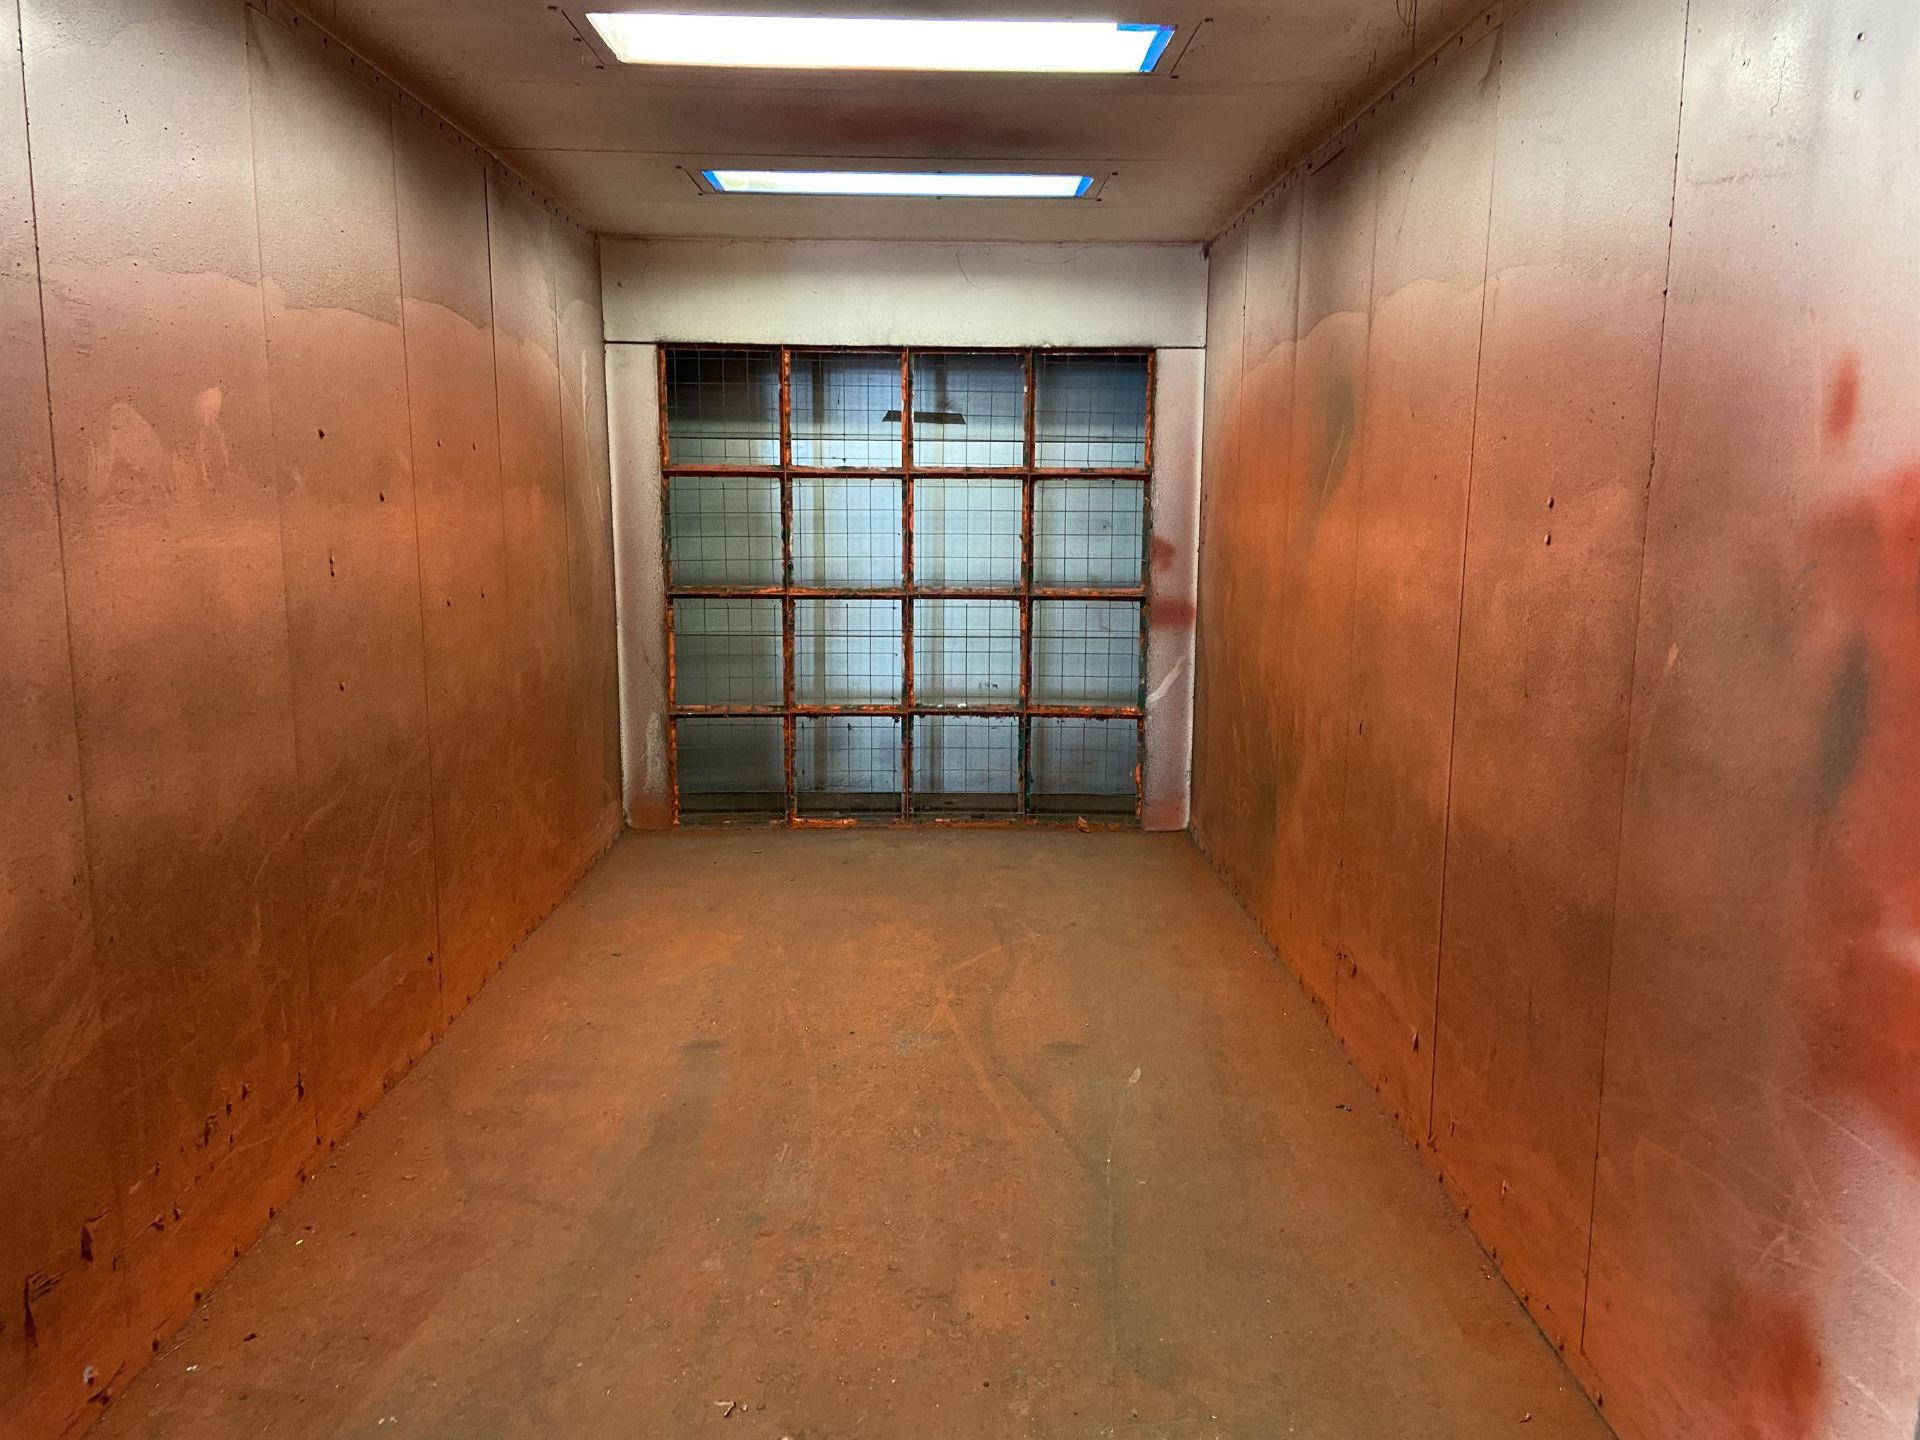 """Colmet 96"""" x 170"""" x 90"""" High Free Standing Paint Booth with Exhaust - Image 2 of 4"""